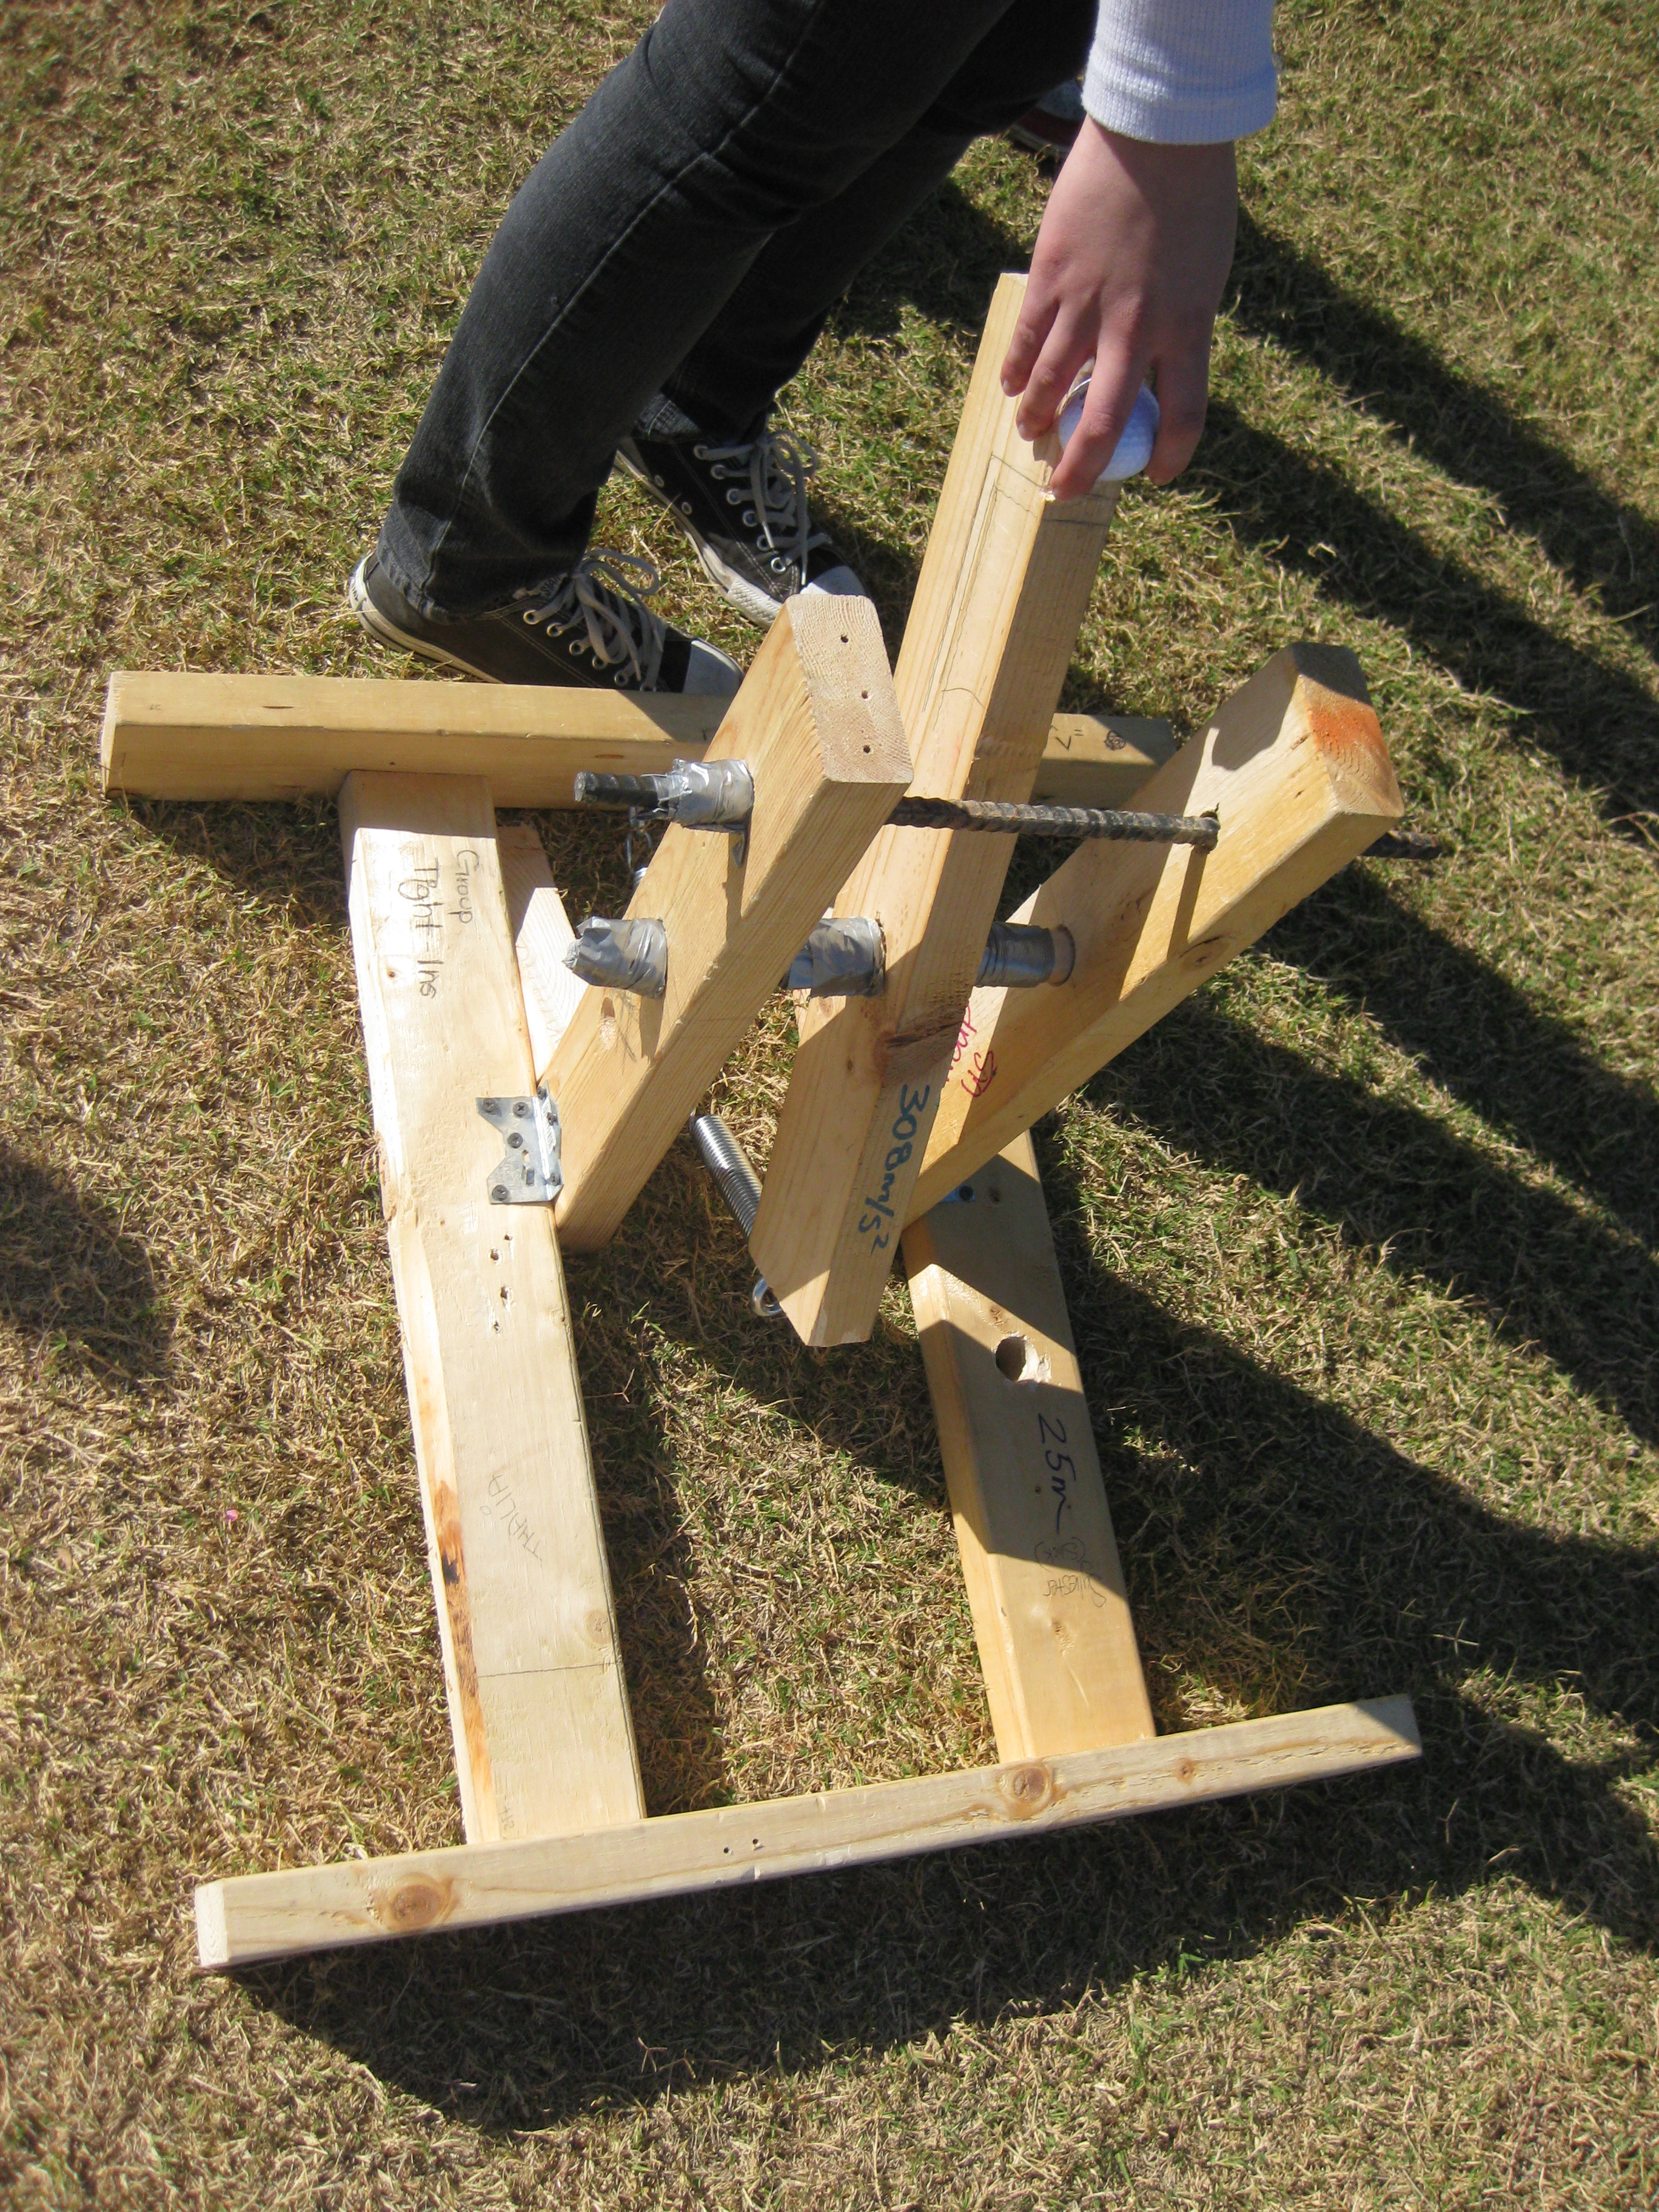 How to build a catapult